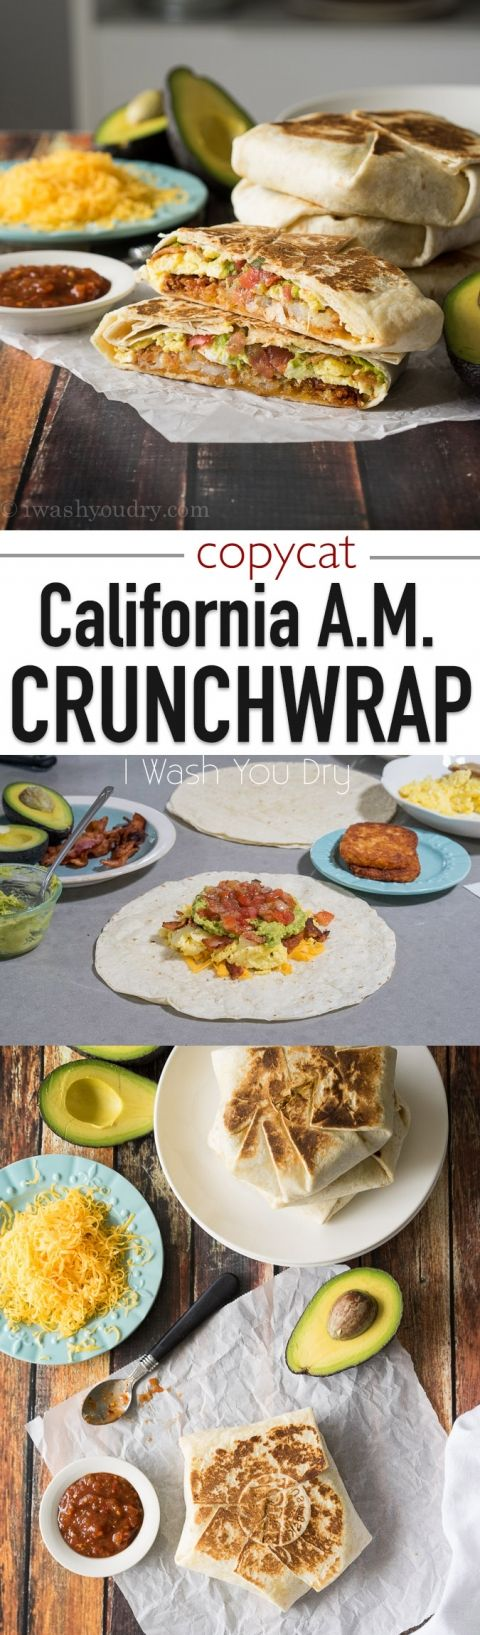 Move over Taco Bell! This breakfast CopyCat California AM Crunchwrap is filled with eggs, crispy hash browns, bacon and avocado! It's downright delicious!